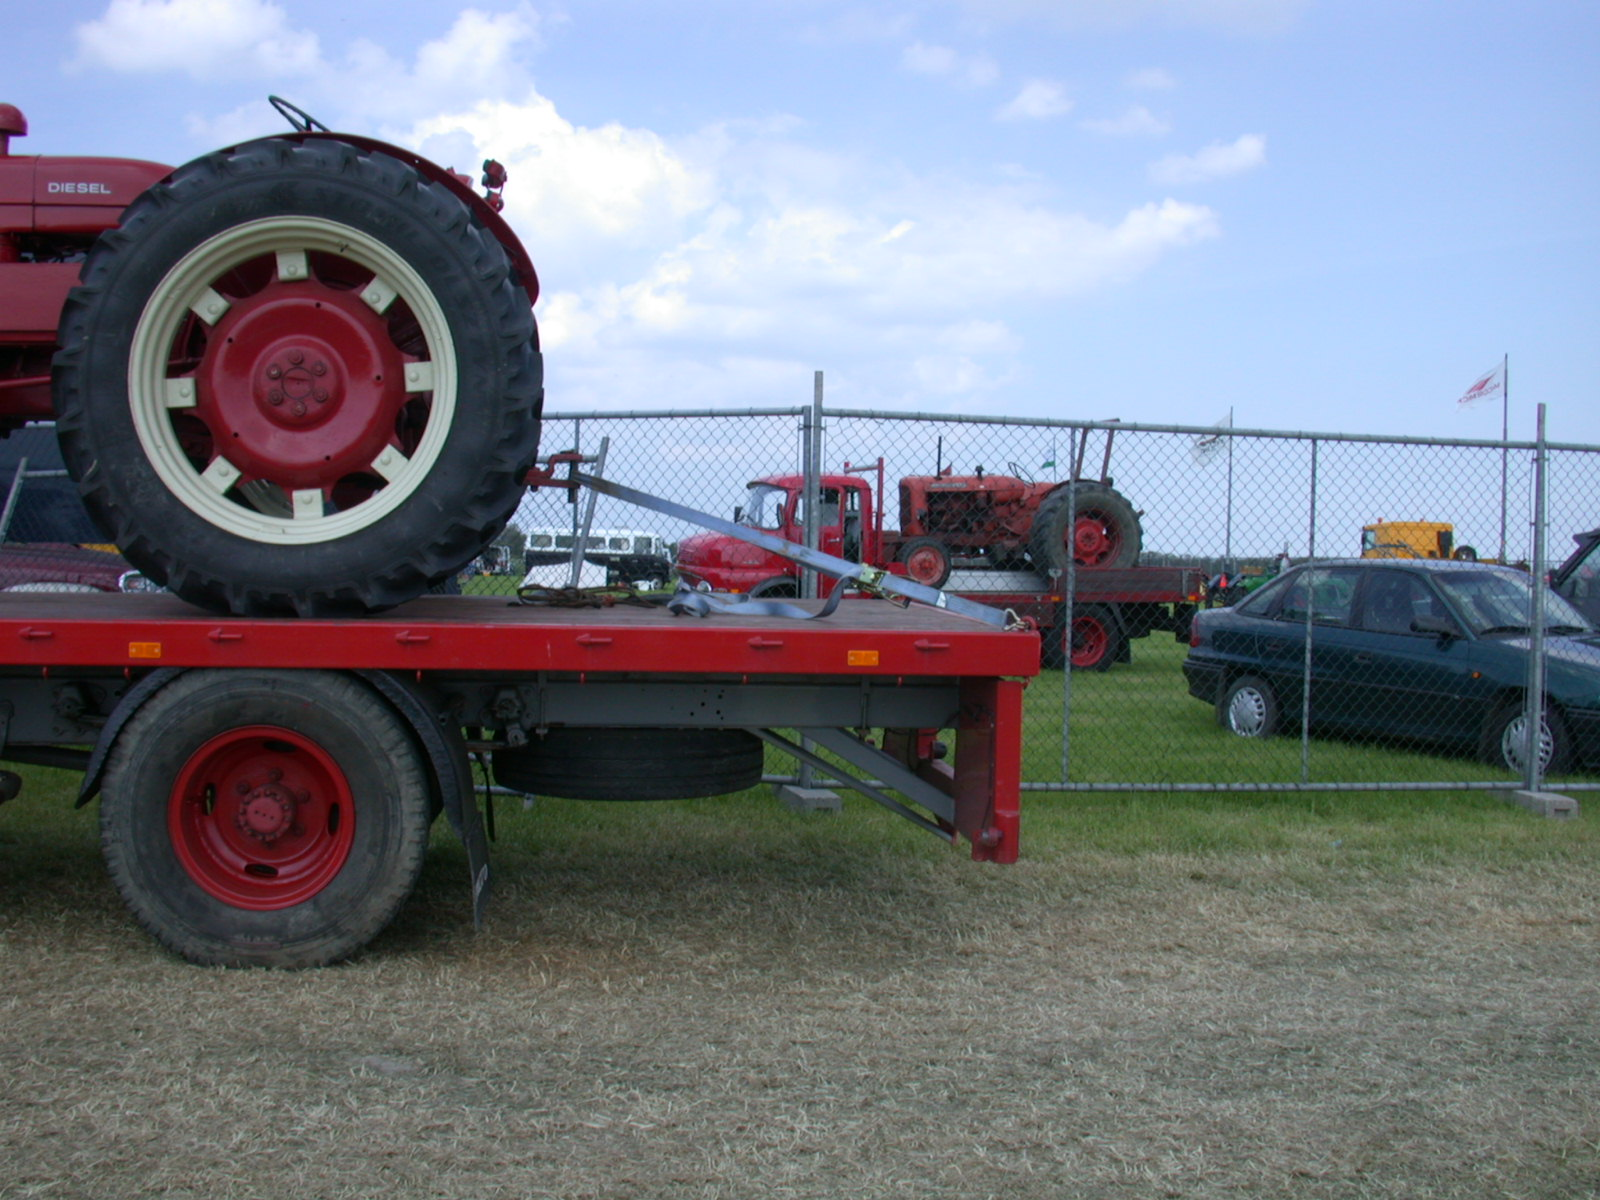 tire tires tracktor loading round huge big wheel wheels truck cars red